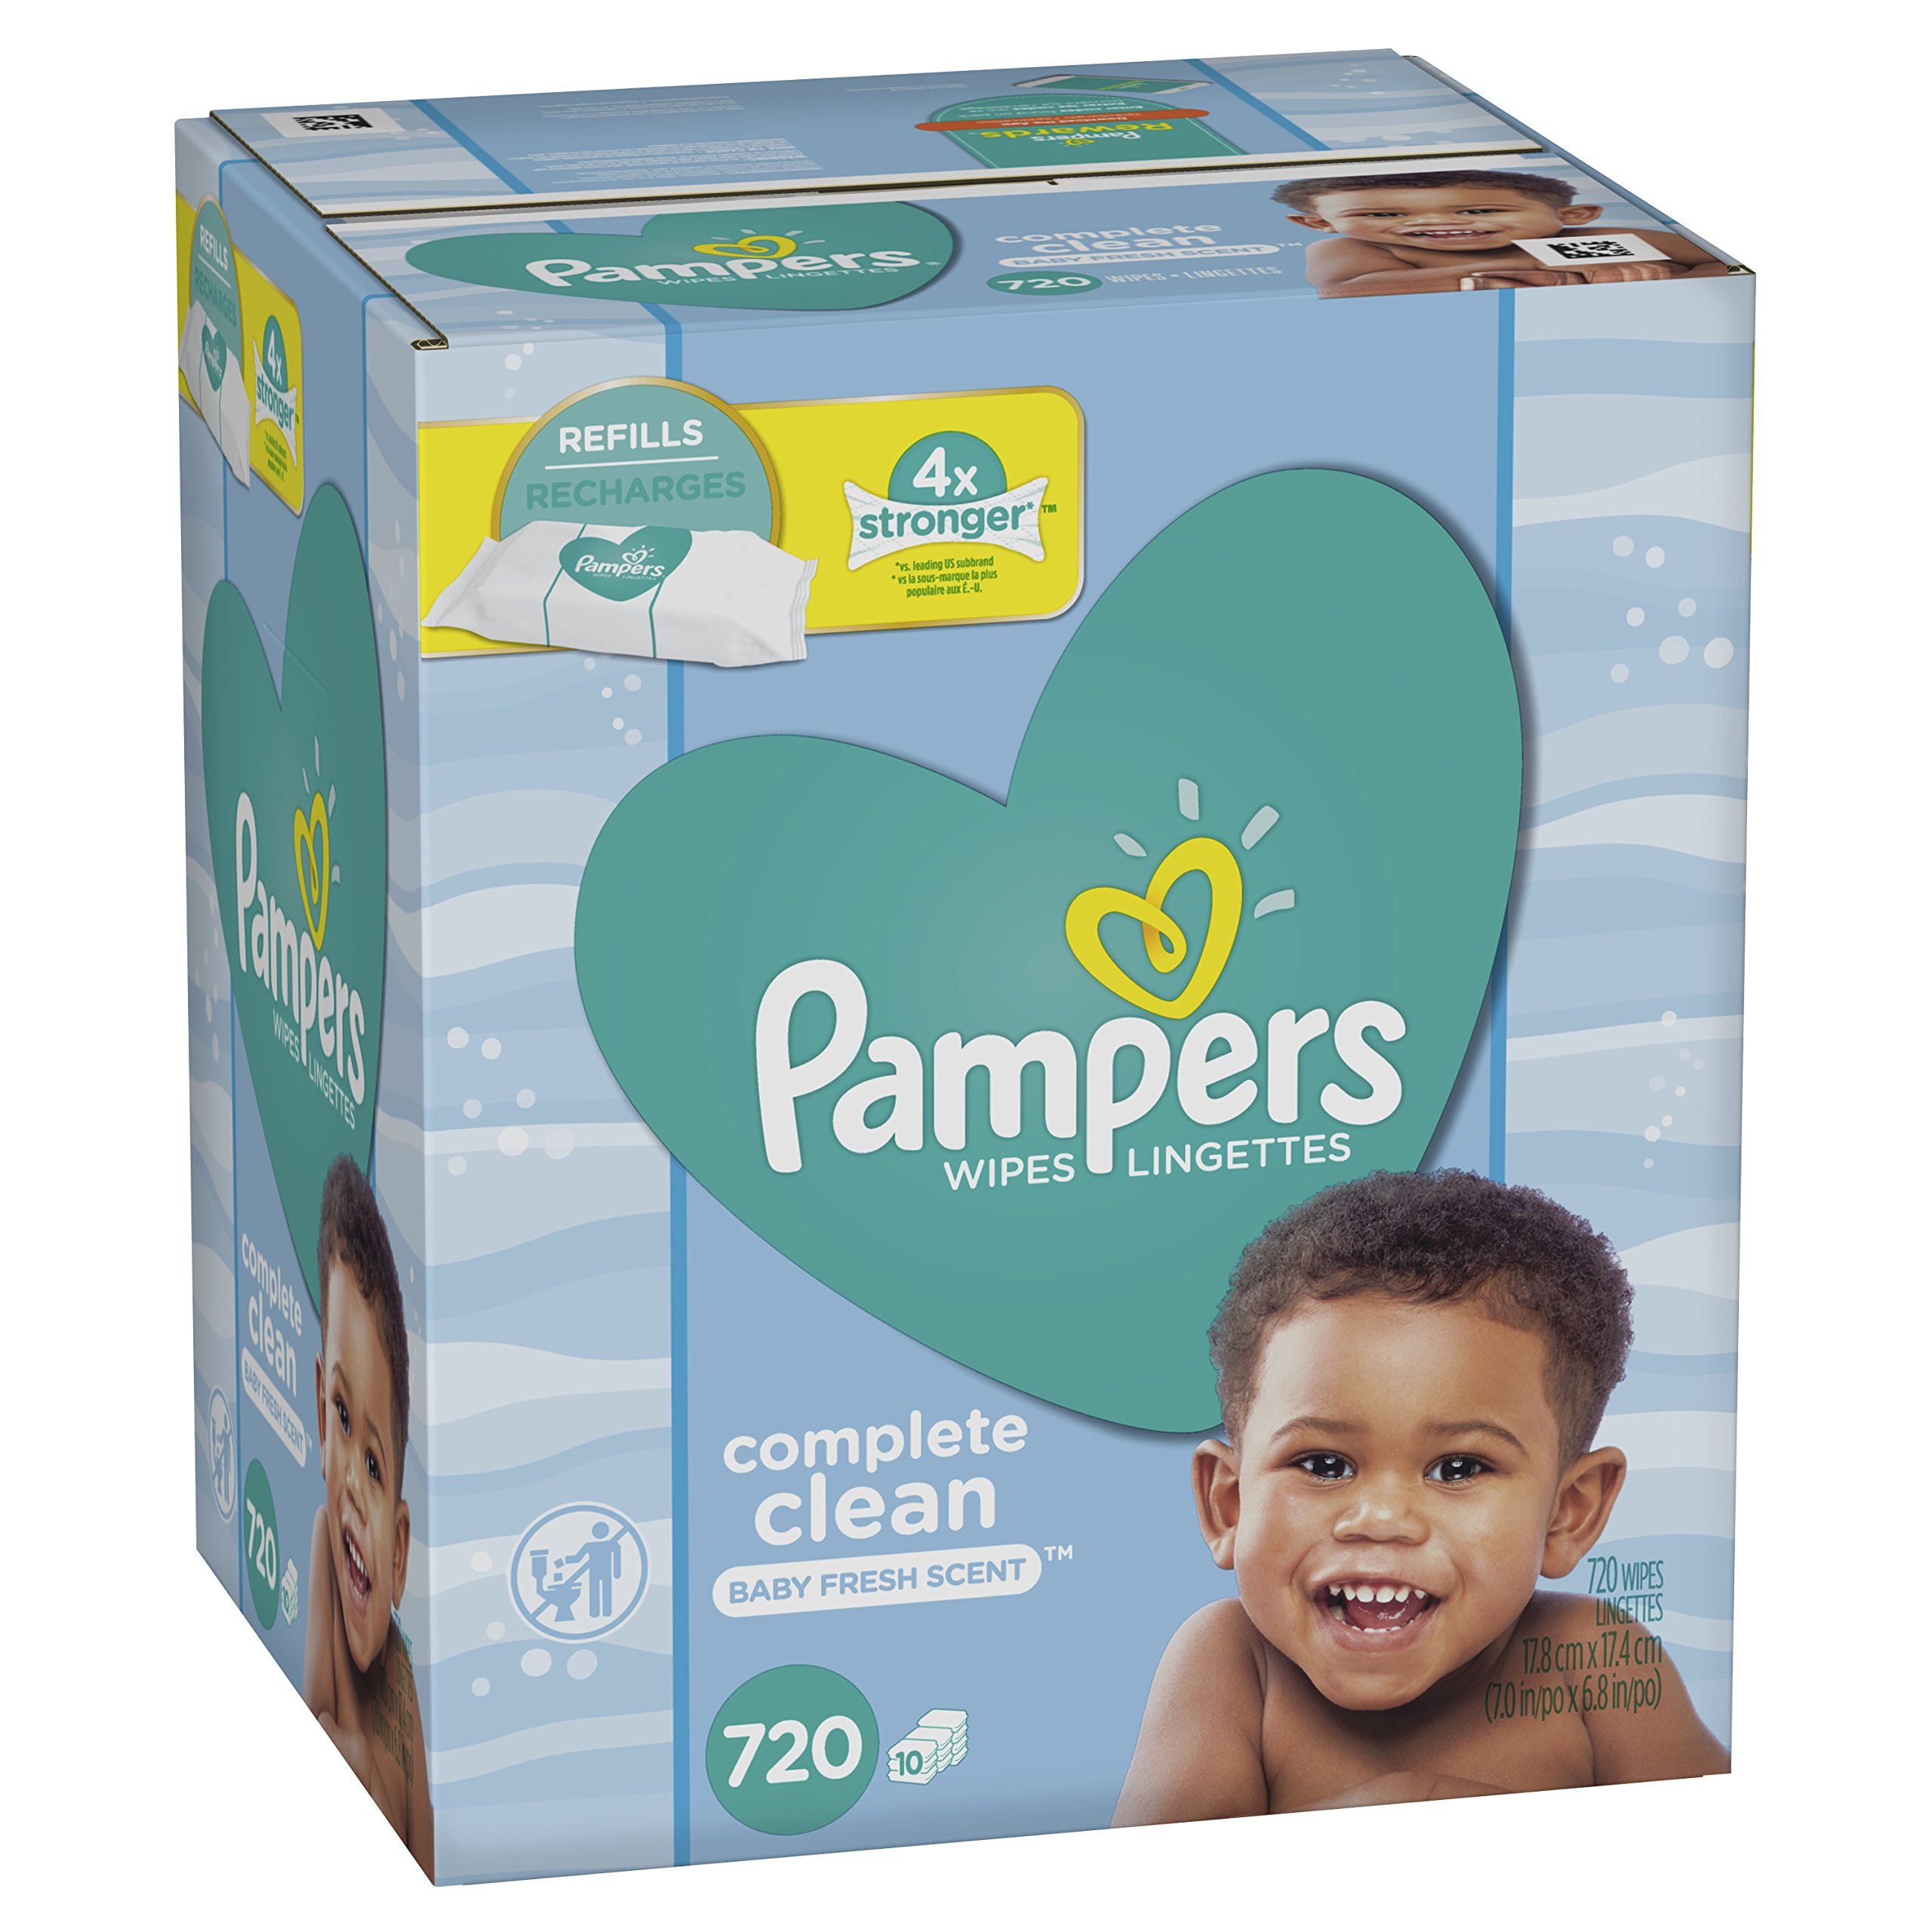 Baby Wipes, Pampers Baby Diaper Wipes, Complete Clean Scented, 10 Refill Packs for Dispenser Tub, 720 Count by Pampers